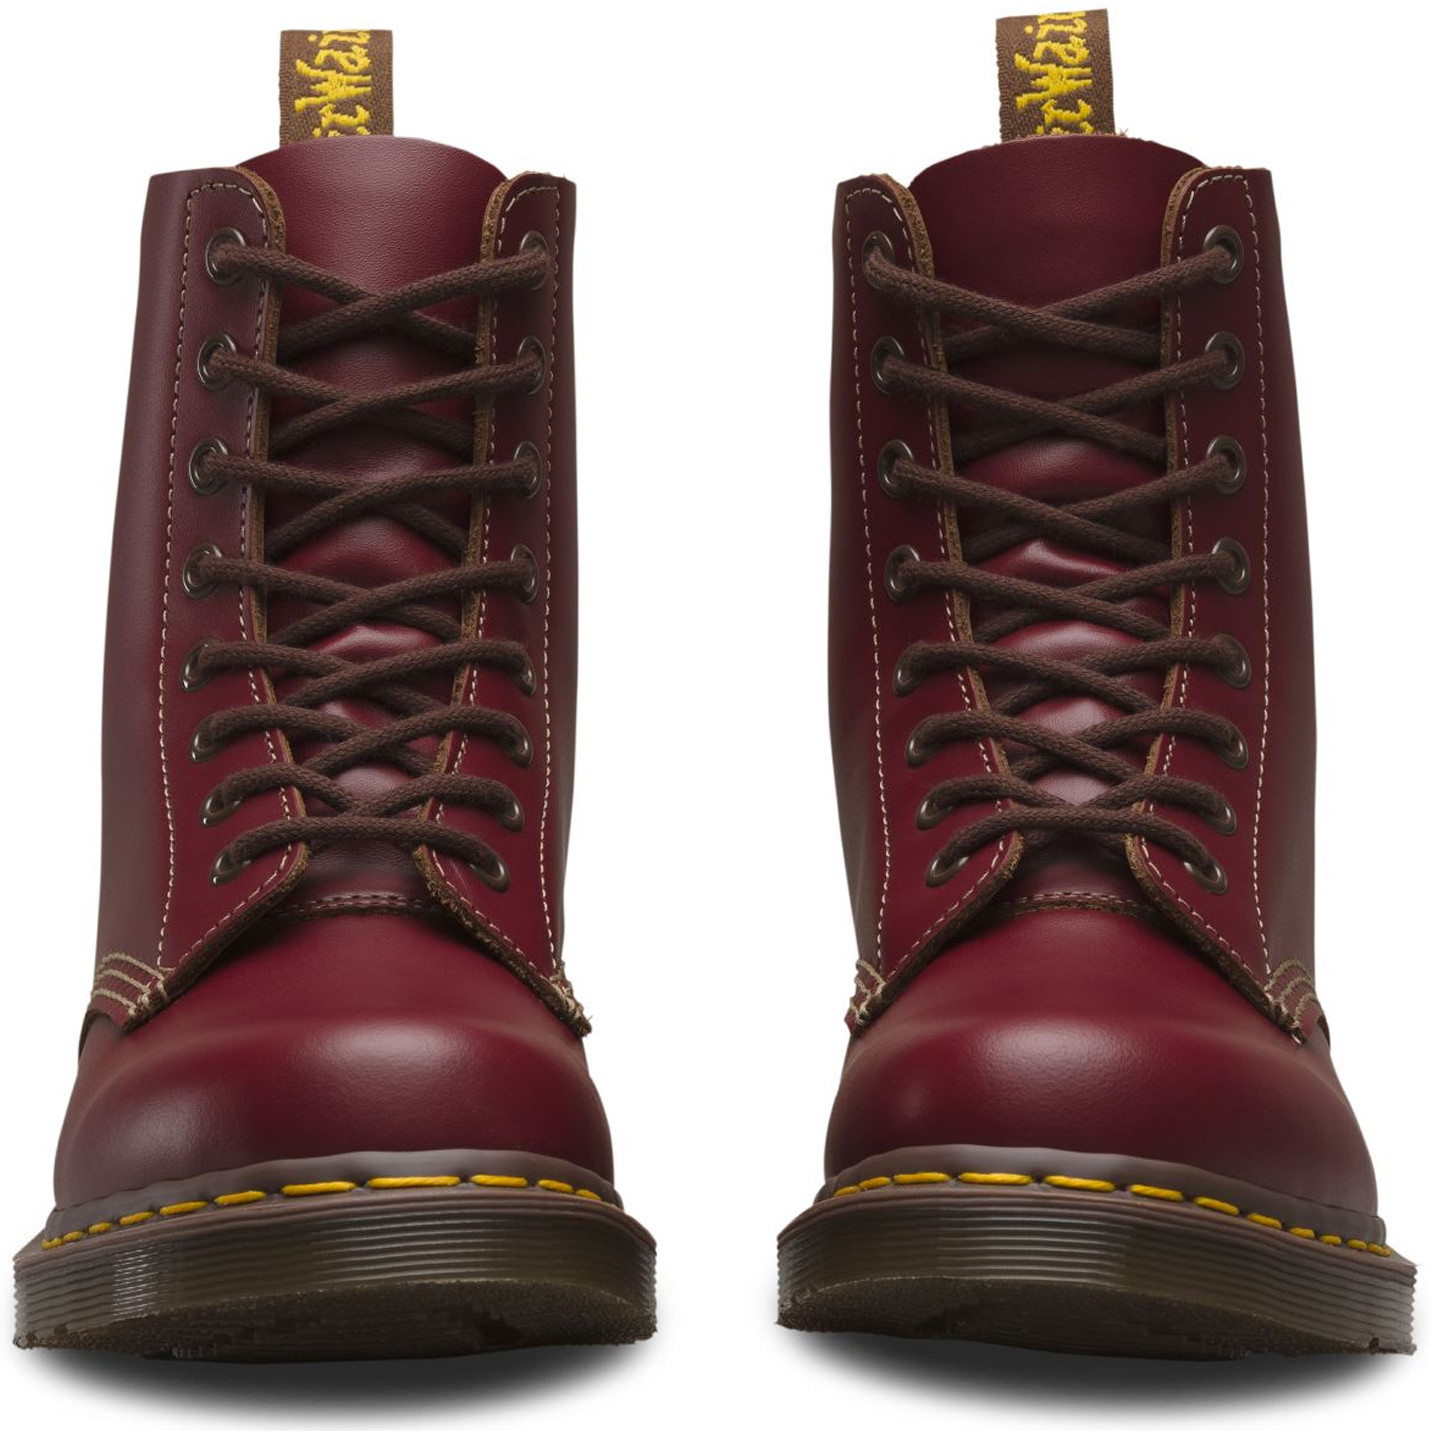 Dr Martens MIE Vintage 1460 Boots Oxlood Quilon Country  Country